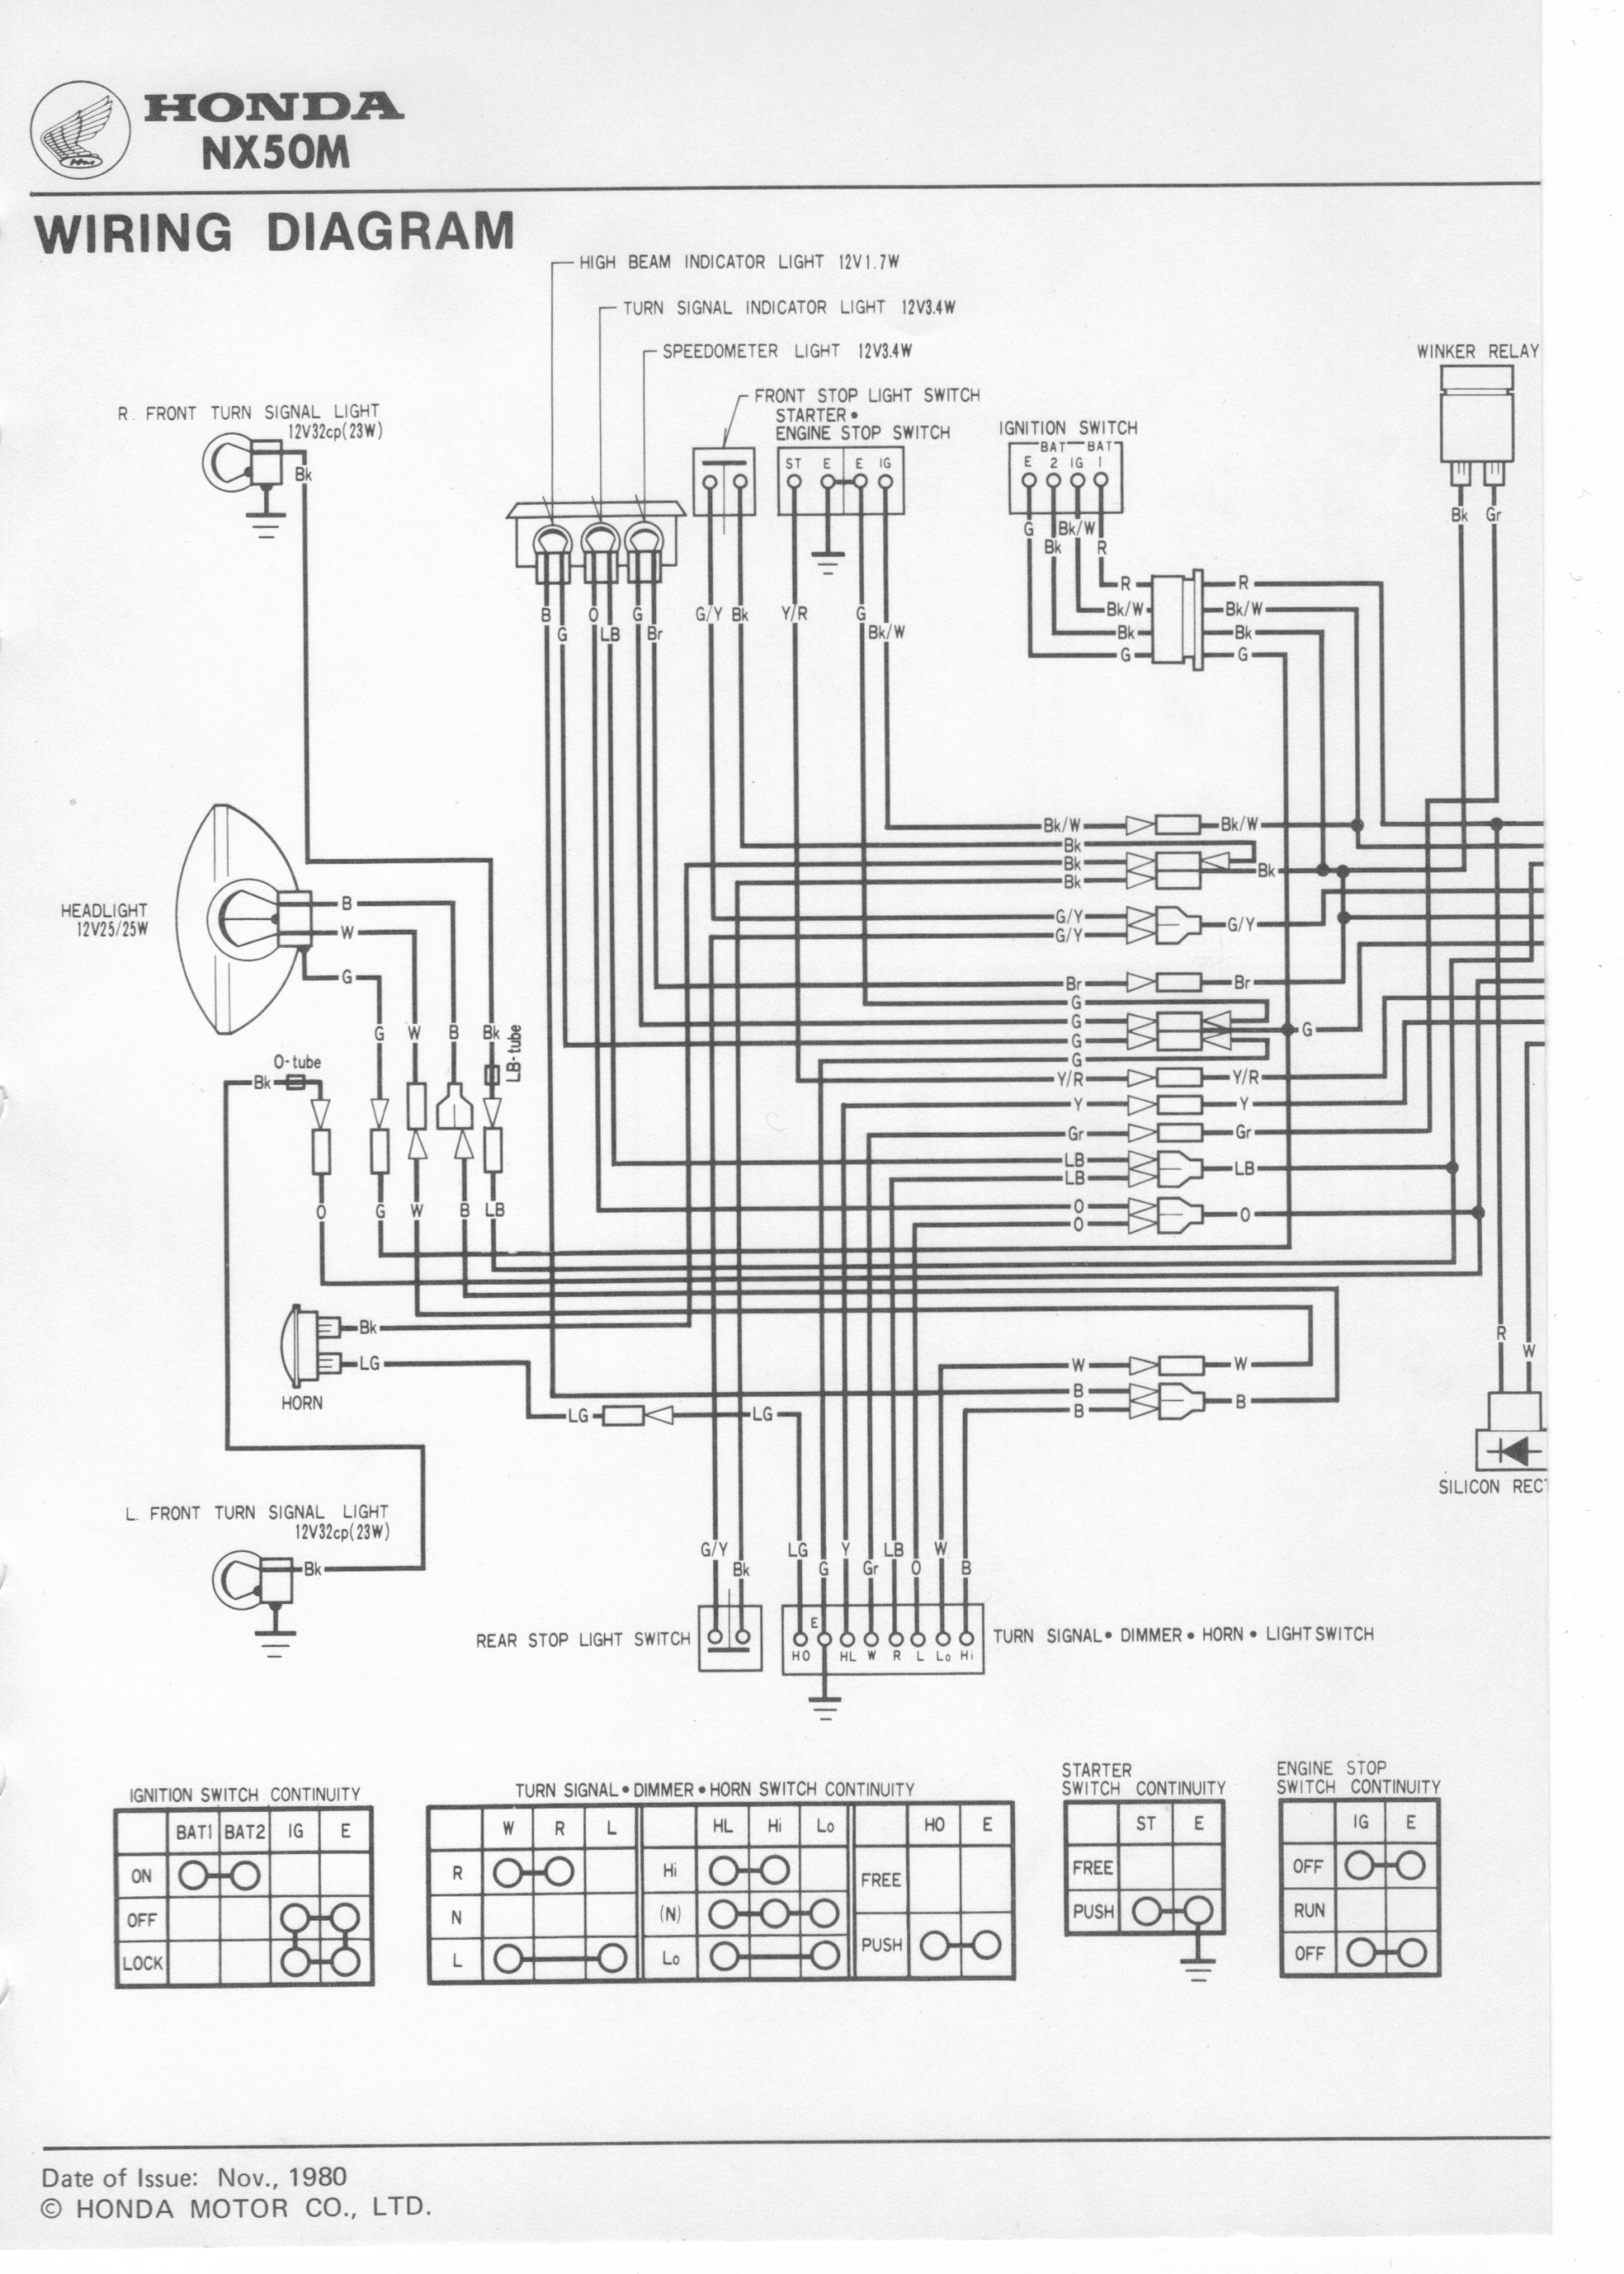 hight resolution of front wiring diagram schematics 20121126163448 99216186 1thumb 550x410 jpg